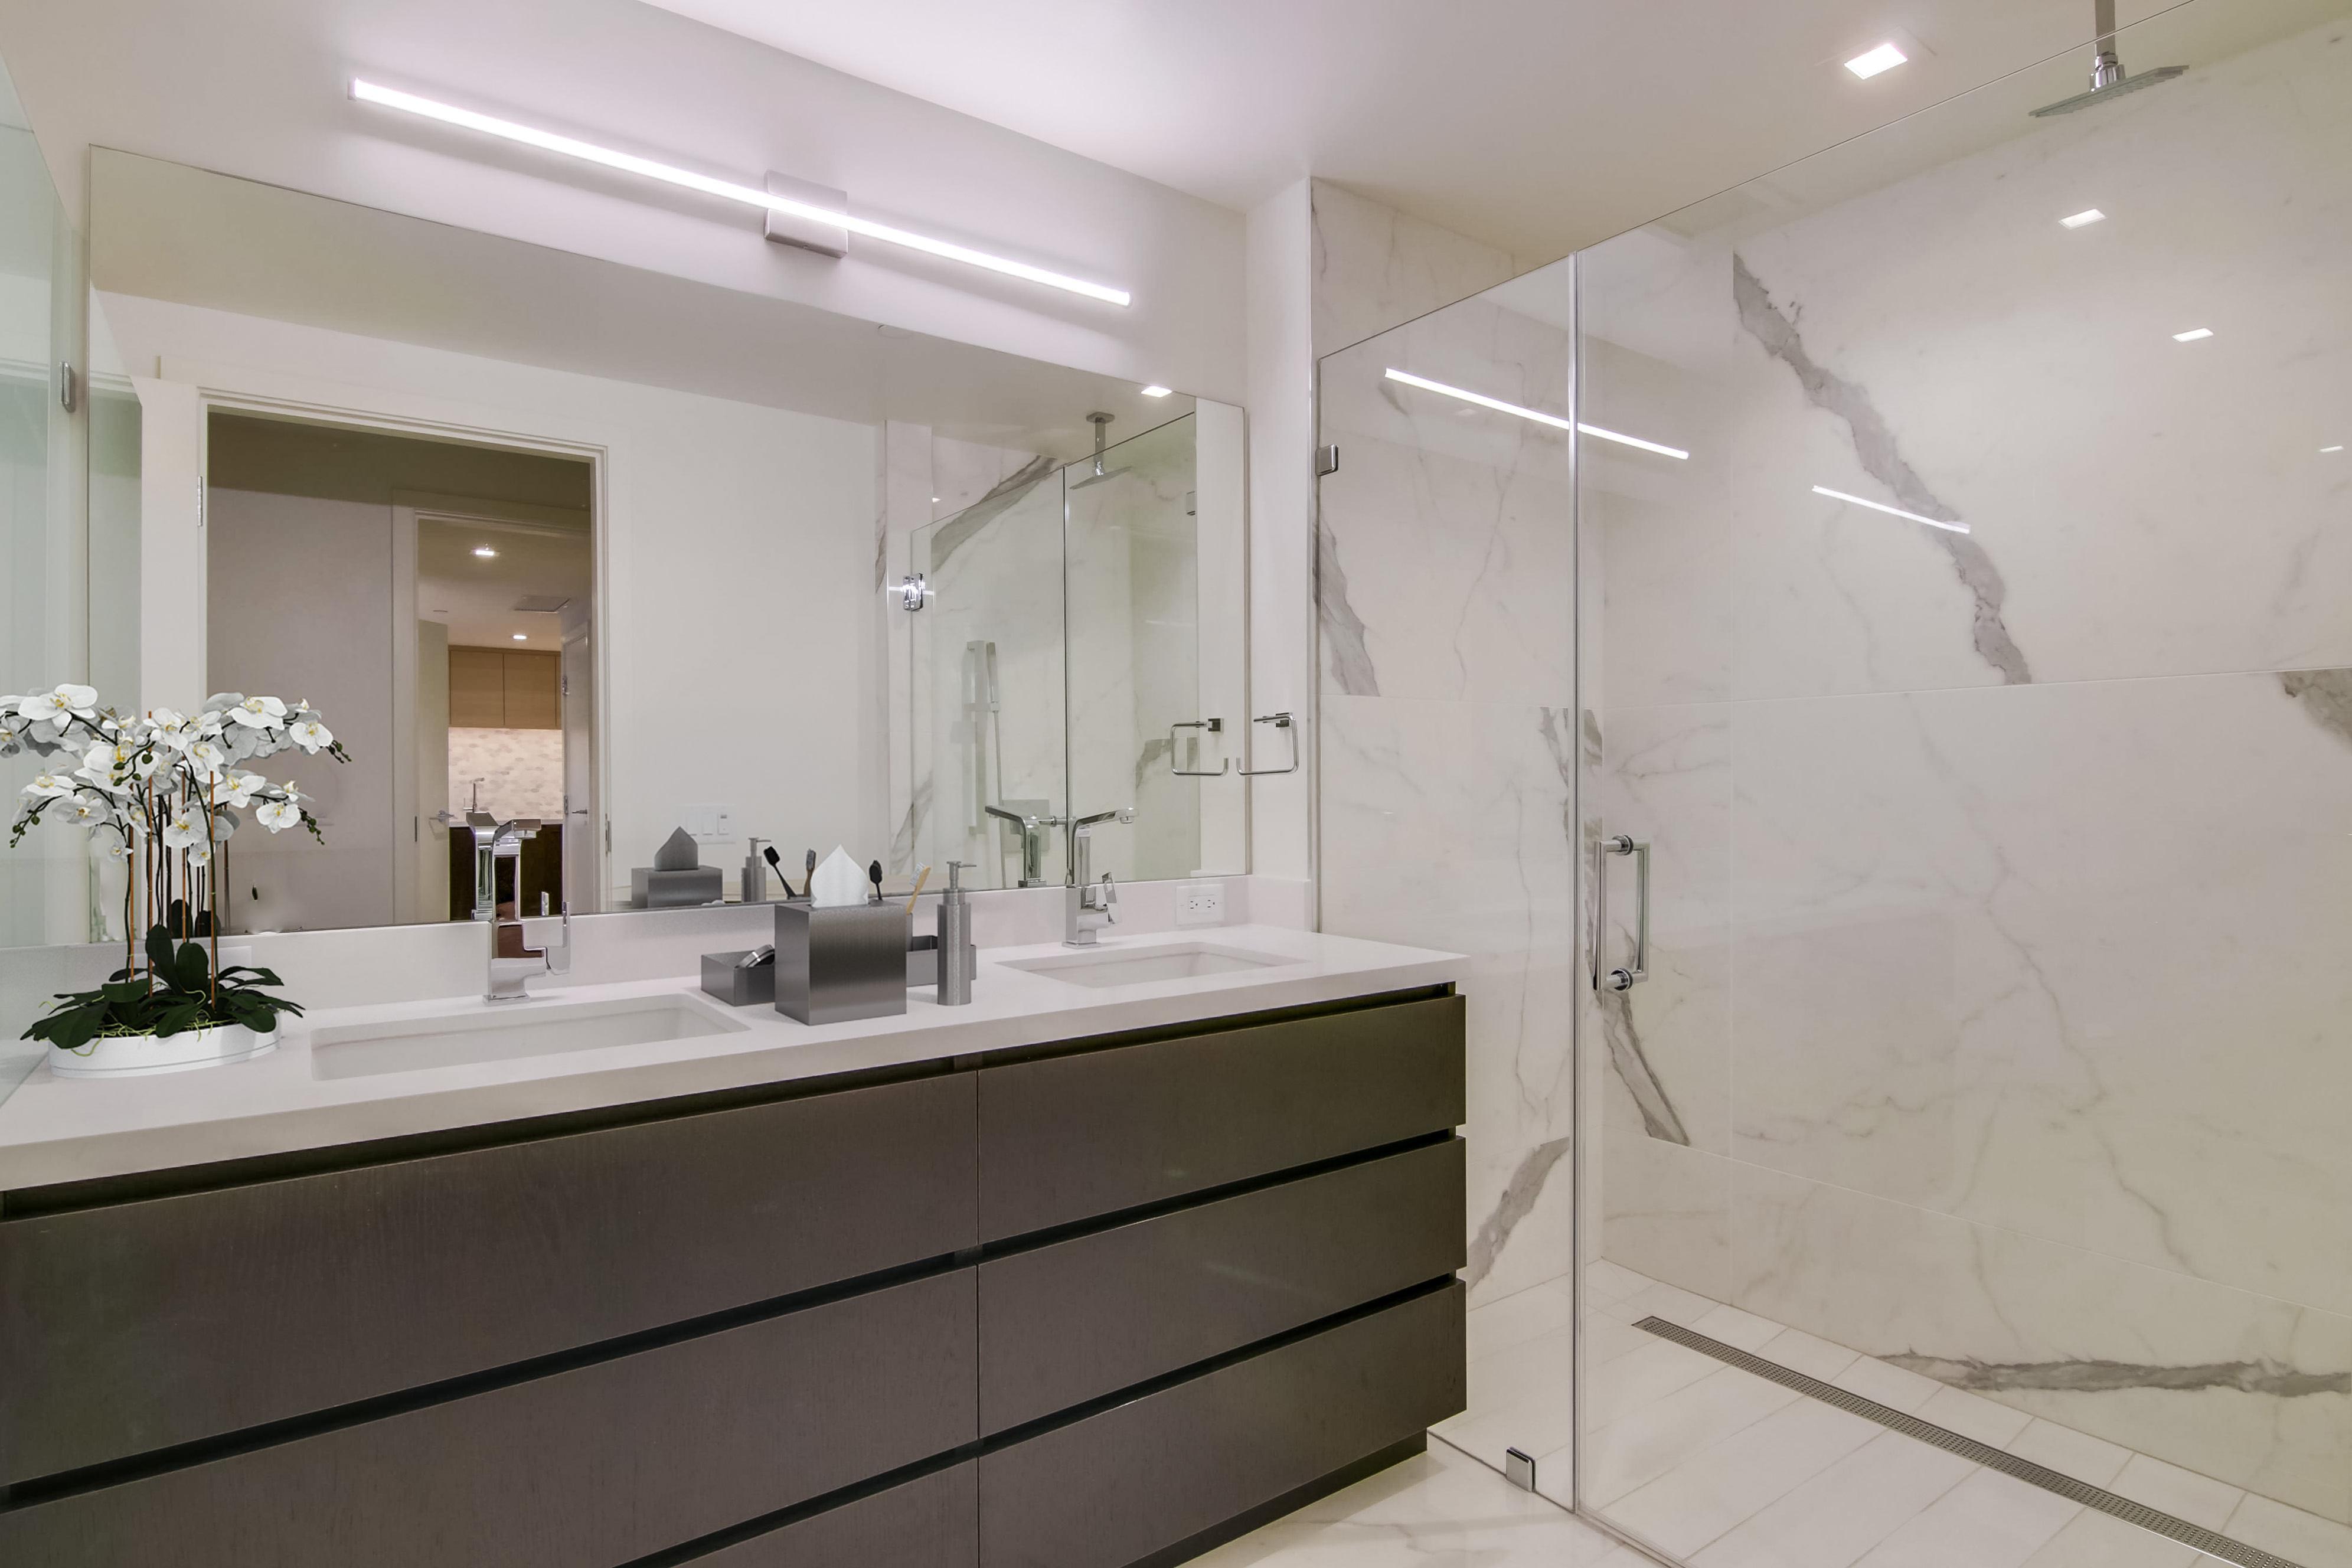 Picture of Bathrooms at Savina Condos in San Diego